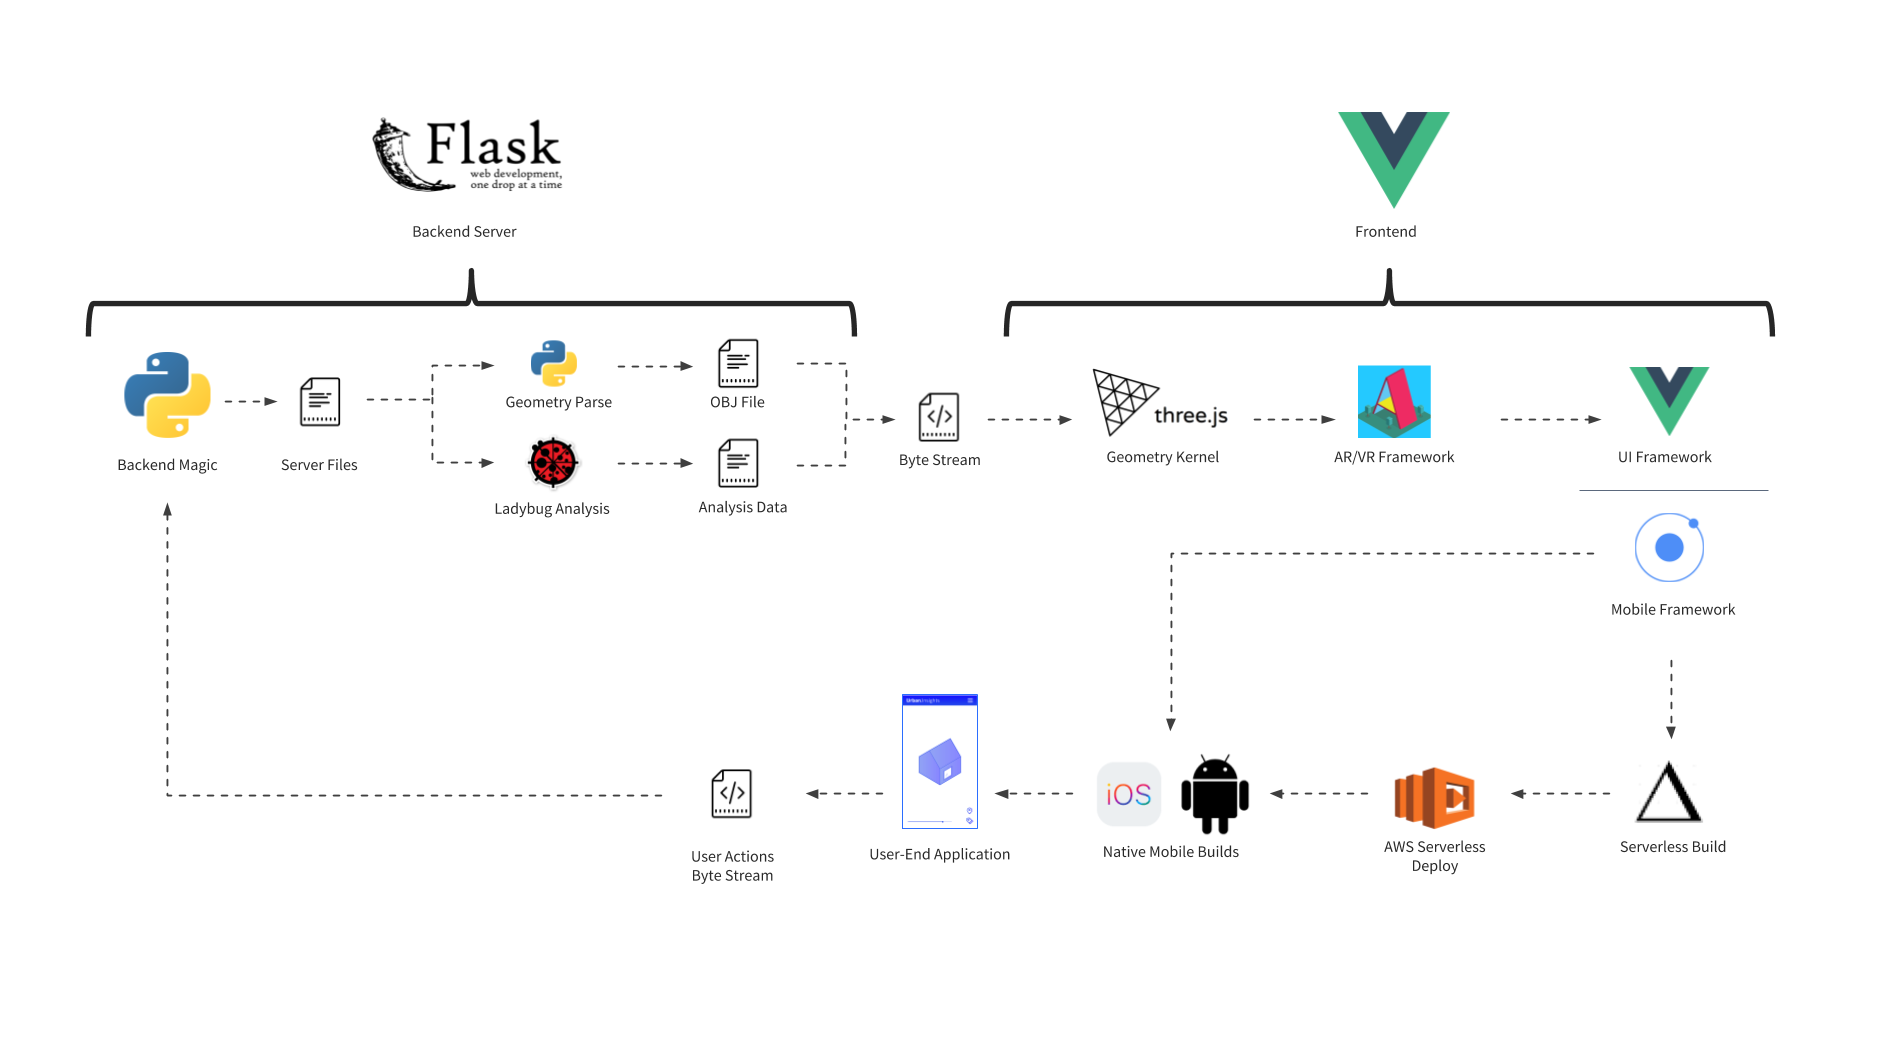 Stack diagram for the web and mobile application